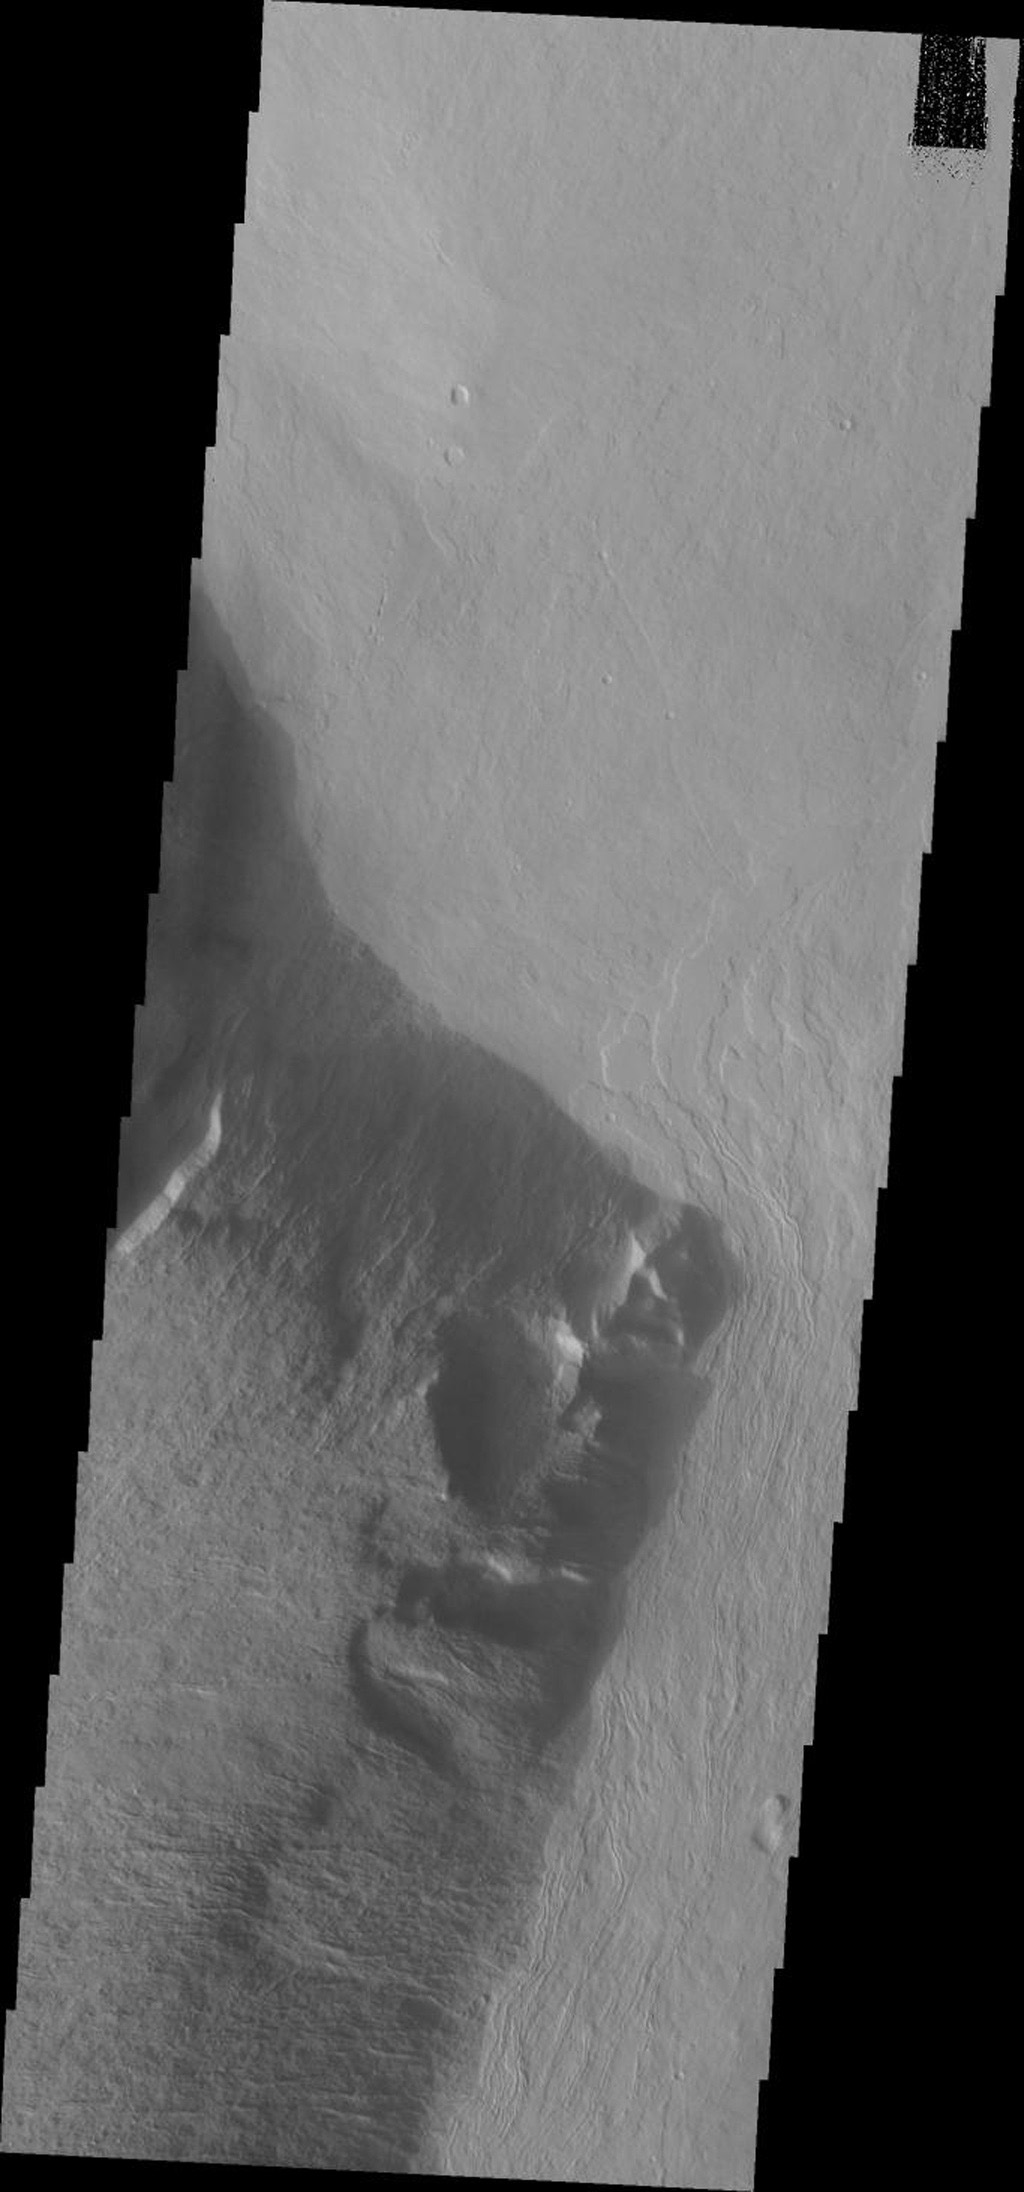 This image from NASA's Mars Odyssey spacecraft shows part of the escarpment of the Olympus Mons volcano on Mars.